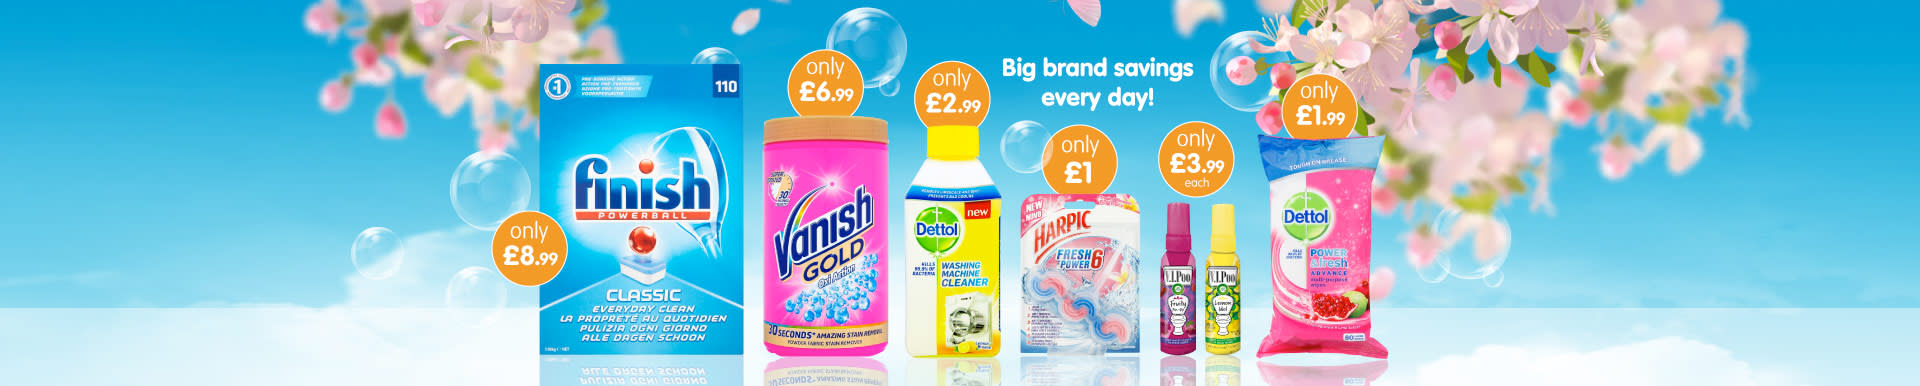 Save on big cleaning brands at B&M.